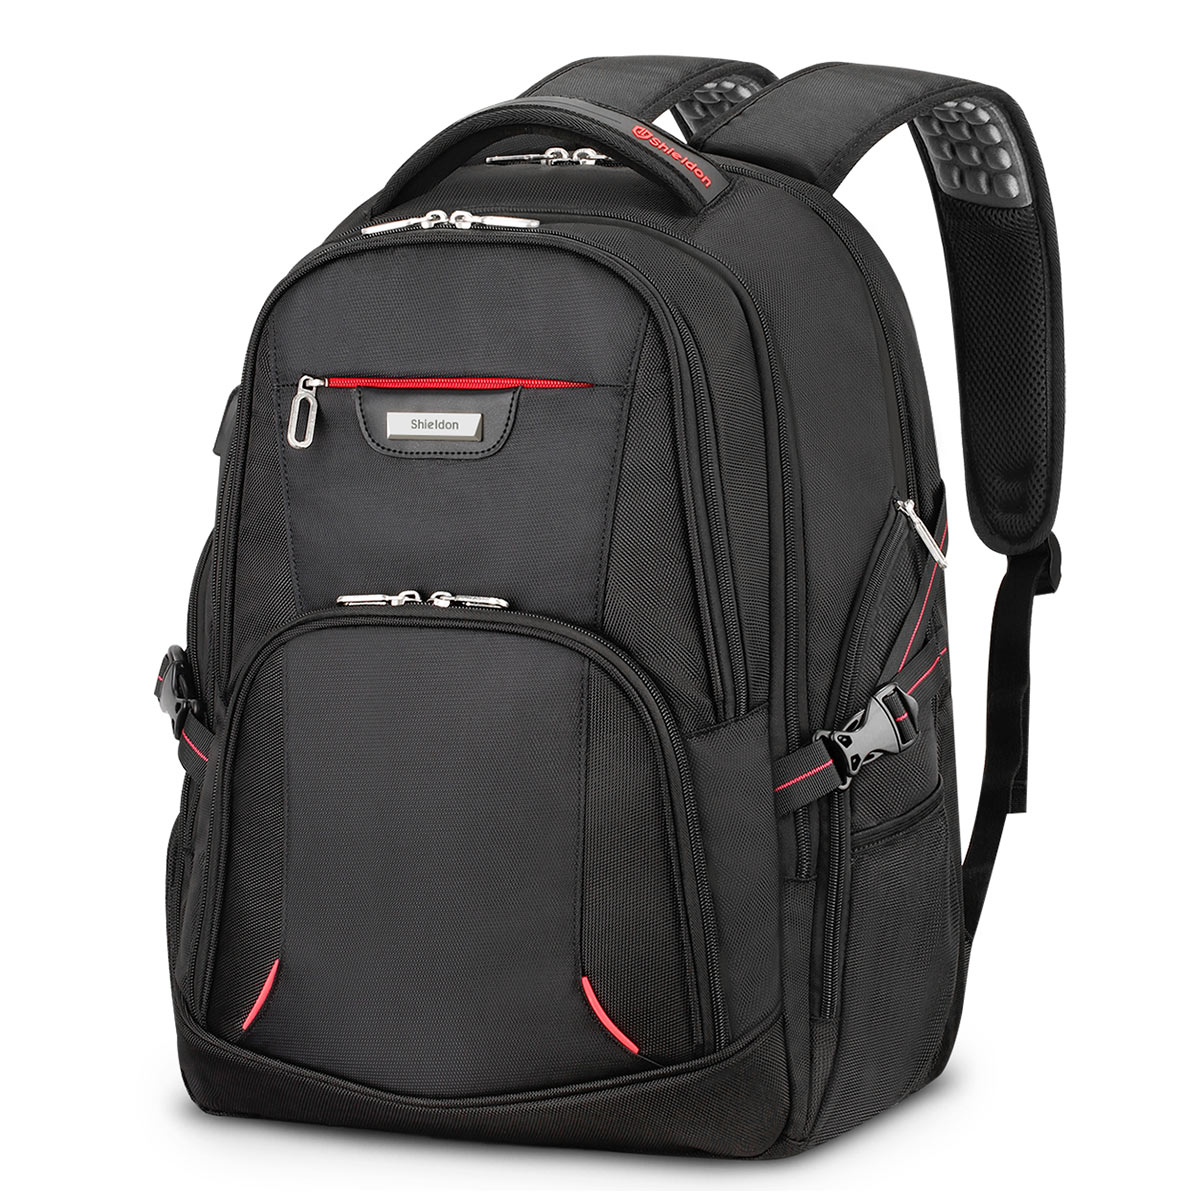 SHIELDON Business Laptop Backpack, Durable 35L Carry-on College Schoolbag for Men